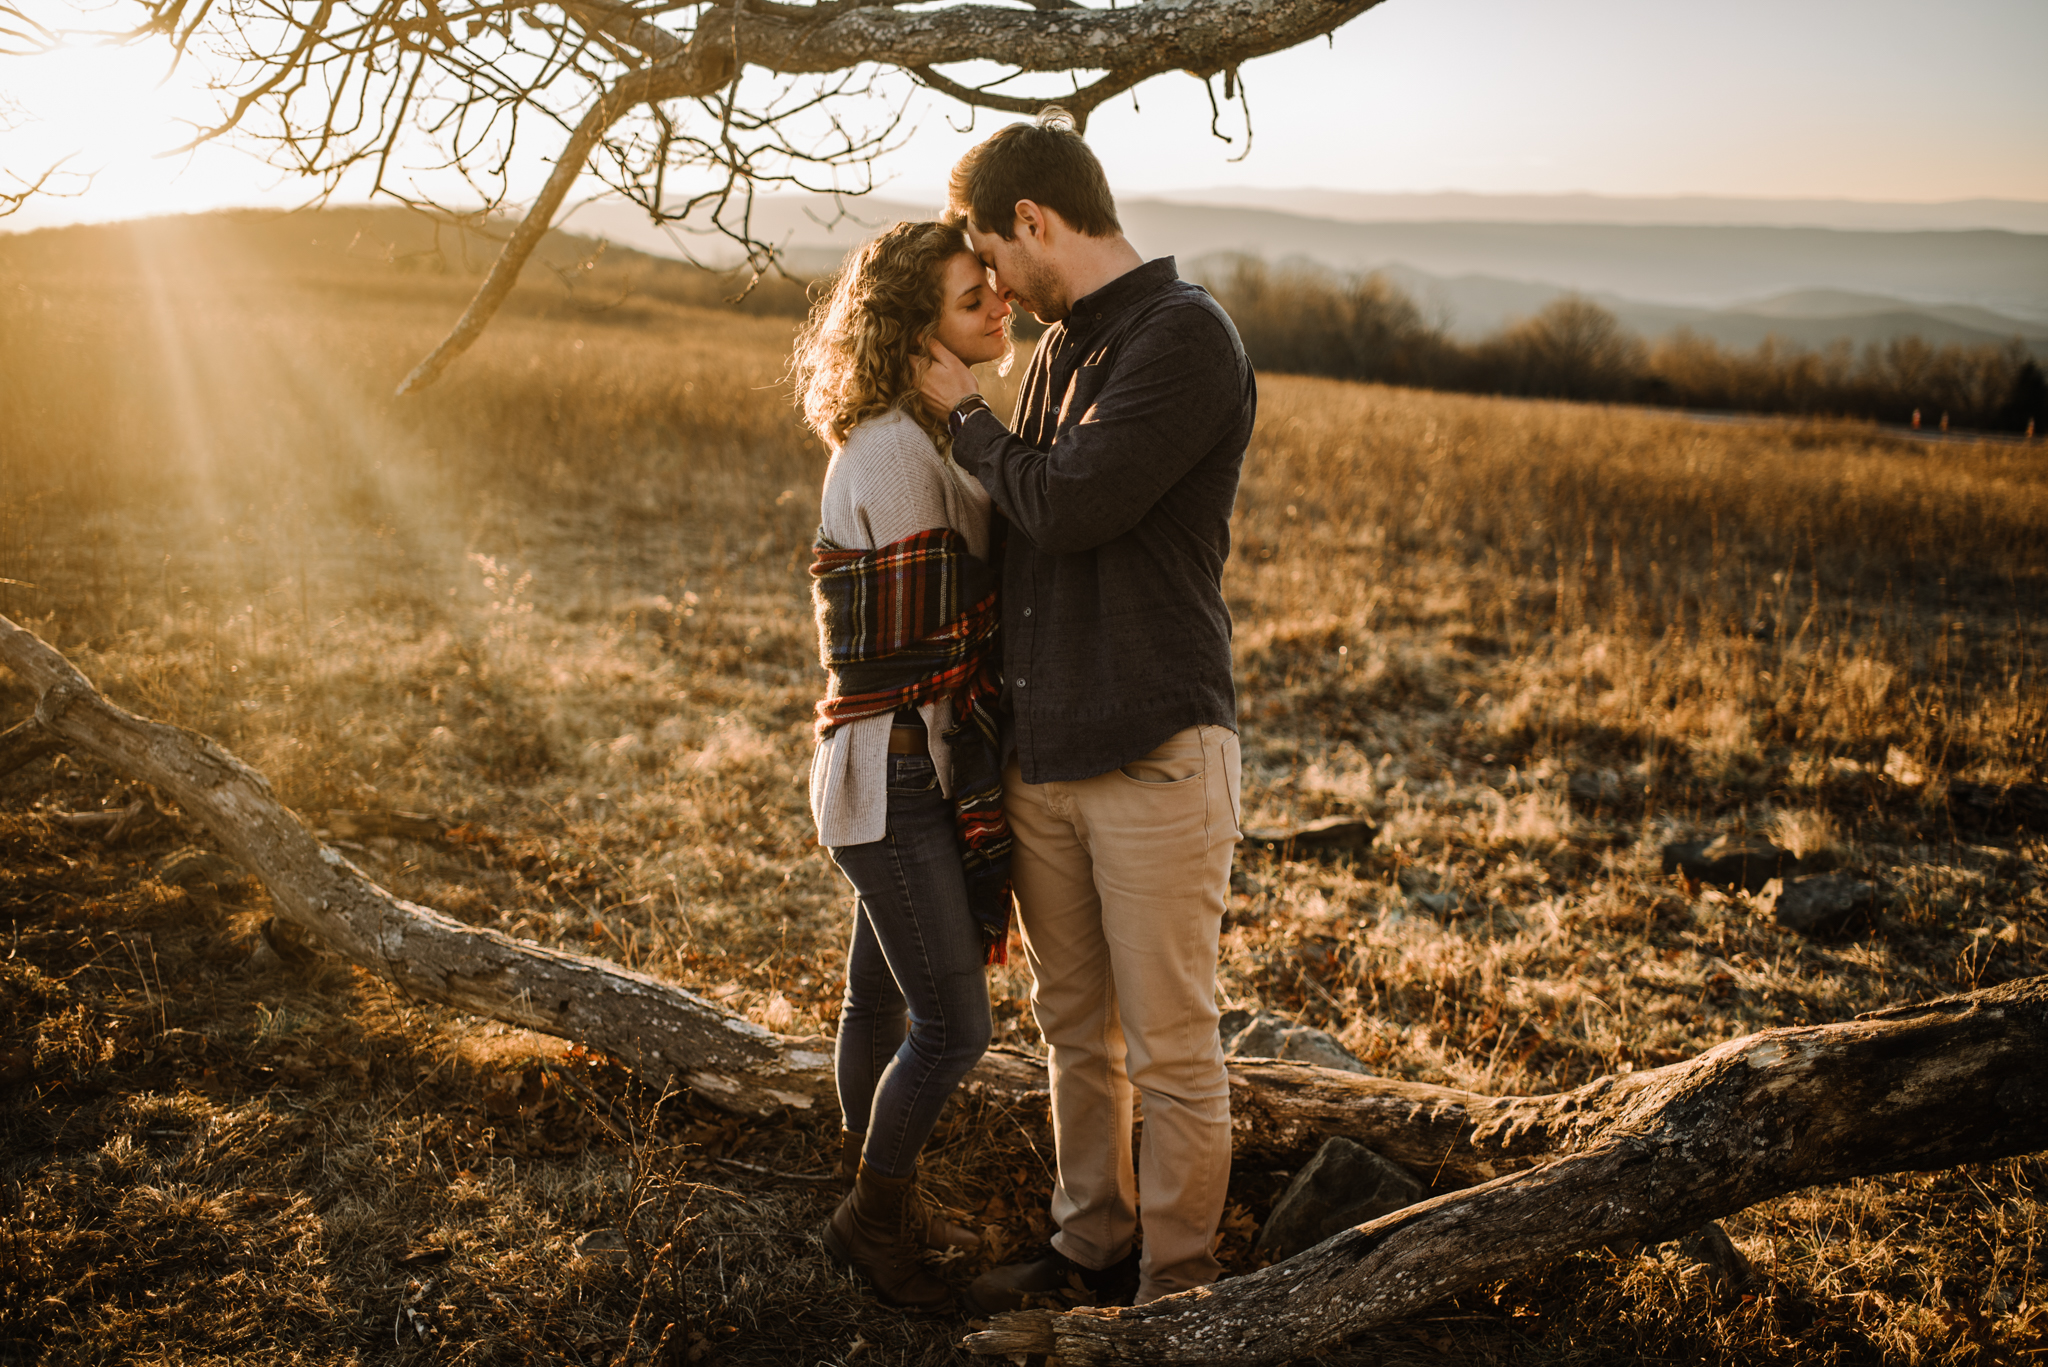 Alli and Mitchell - Shenandoah National Park Adventure Winter Engagement Session on Skyline Drive - White Sails Creative Elopement Photography_49.JPG